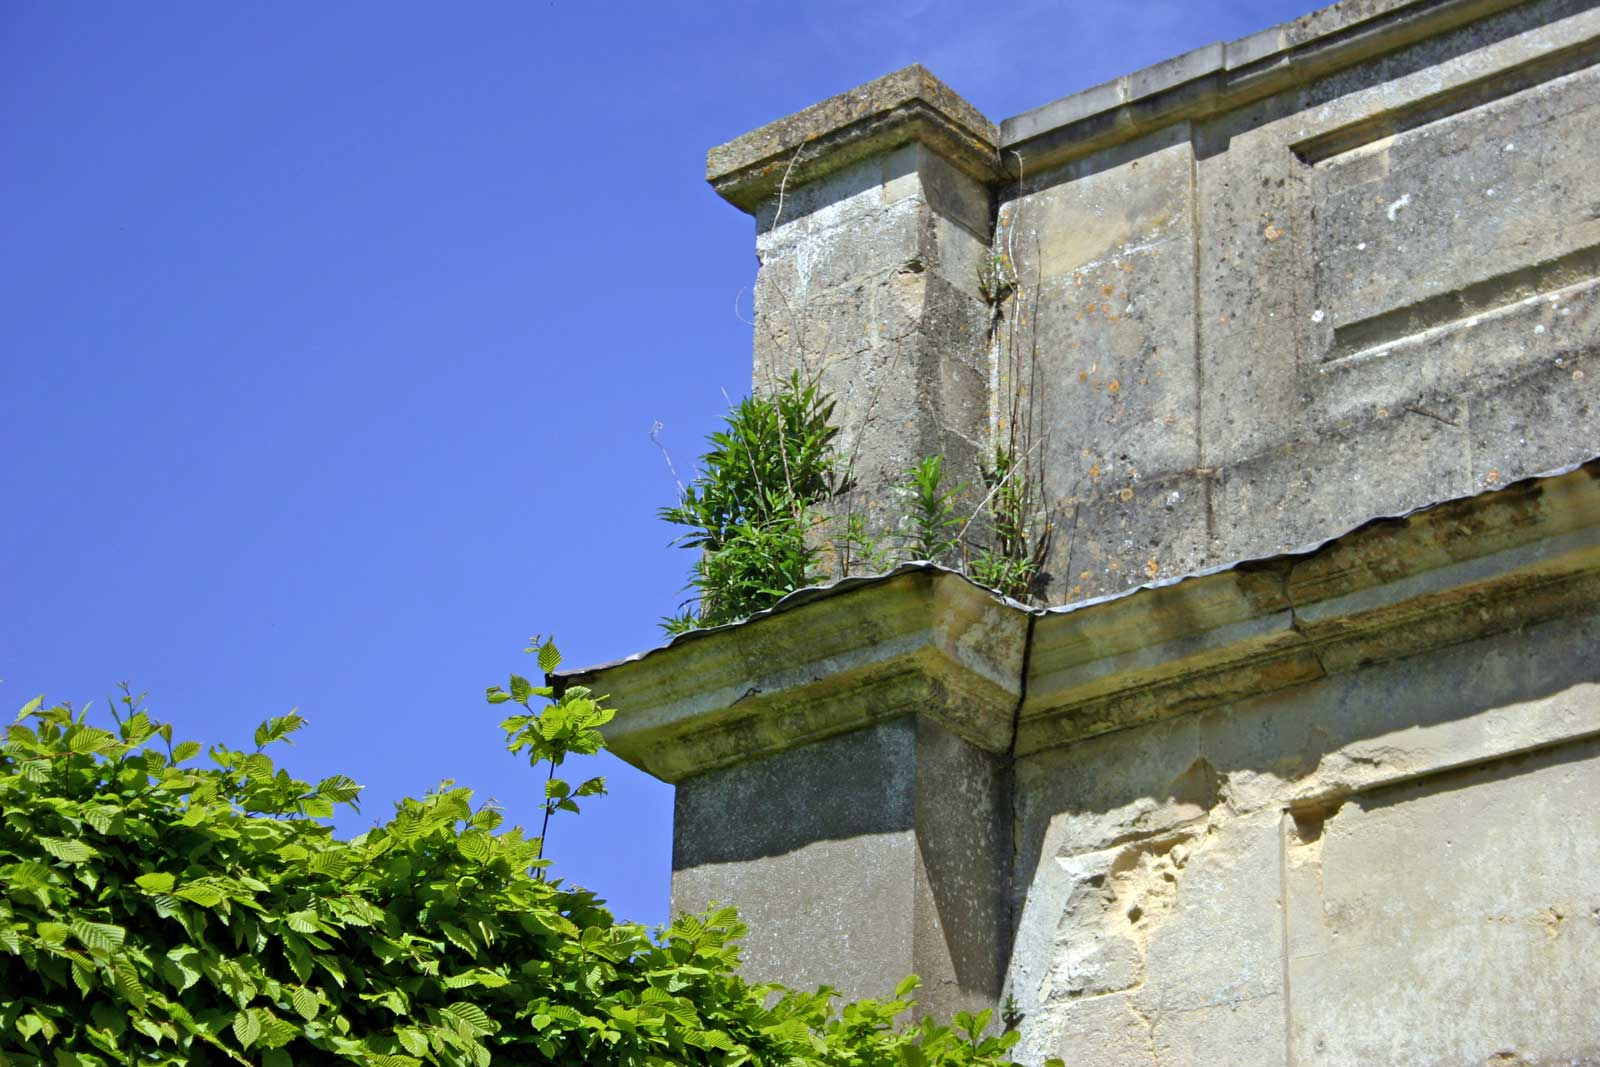 Weeds Growing Above the Outer Porch